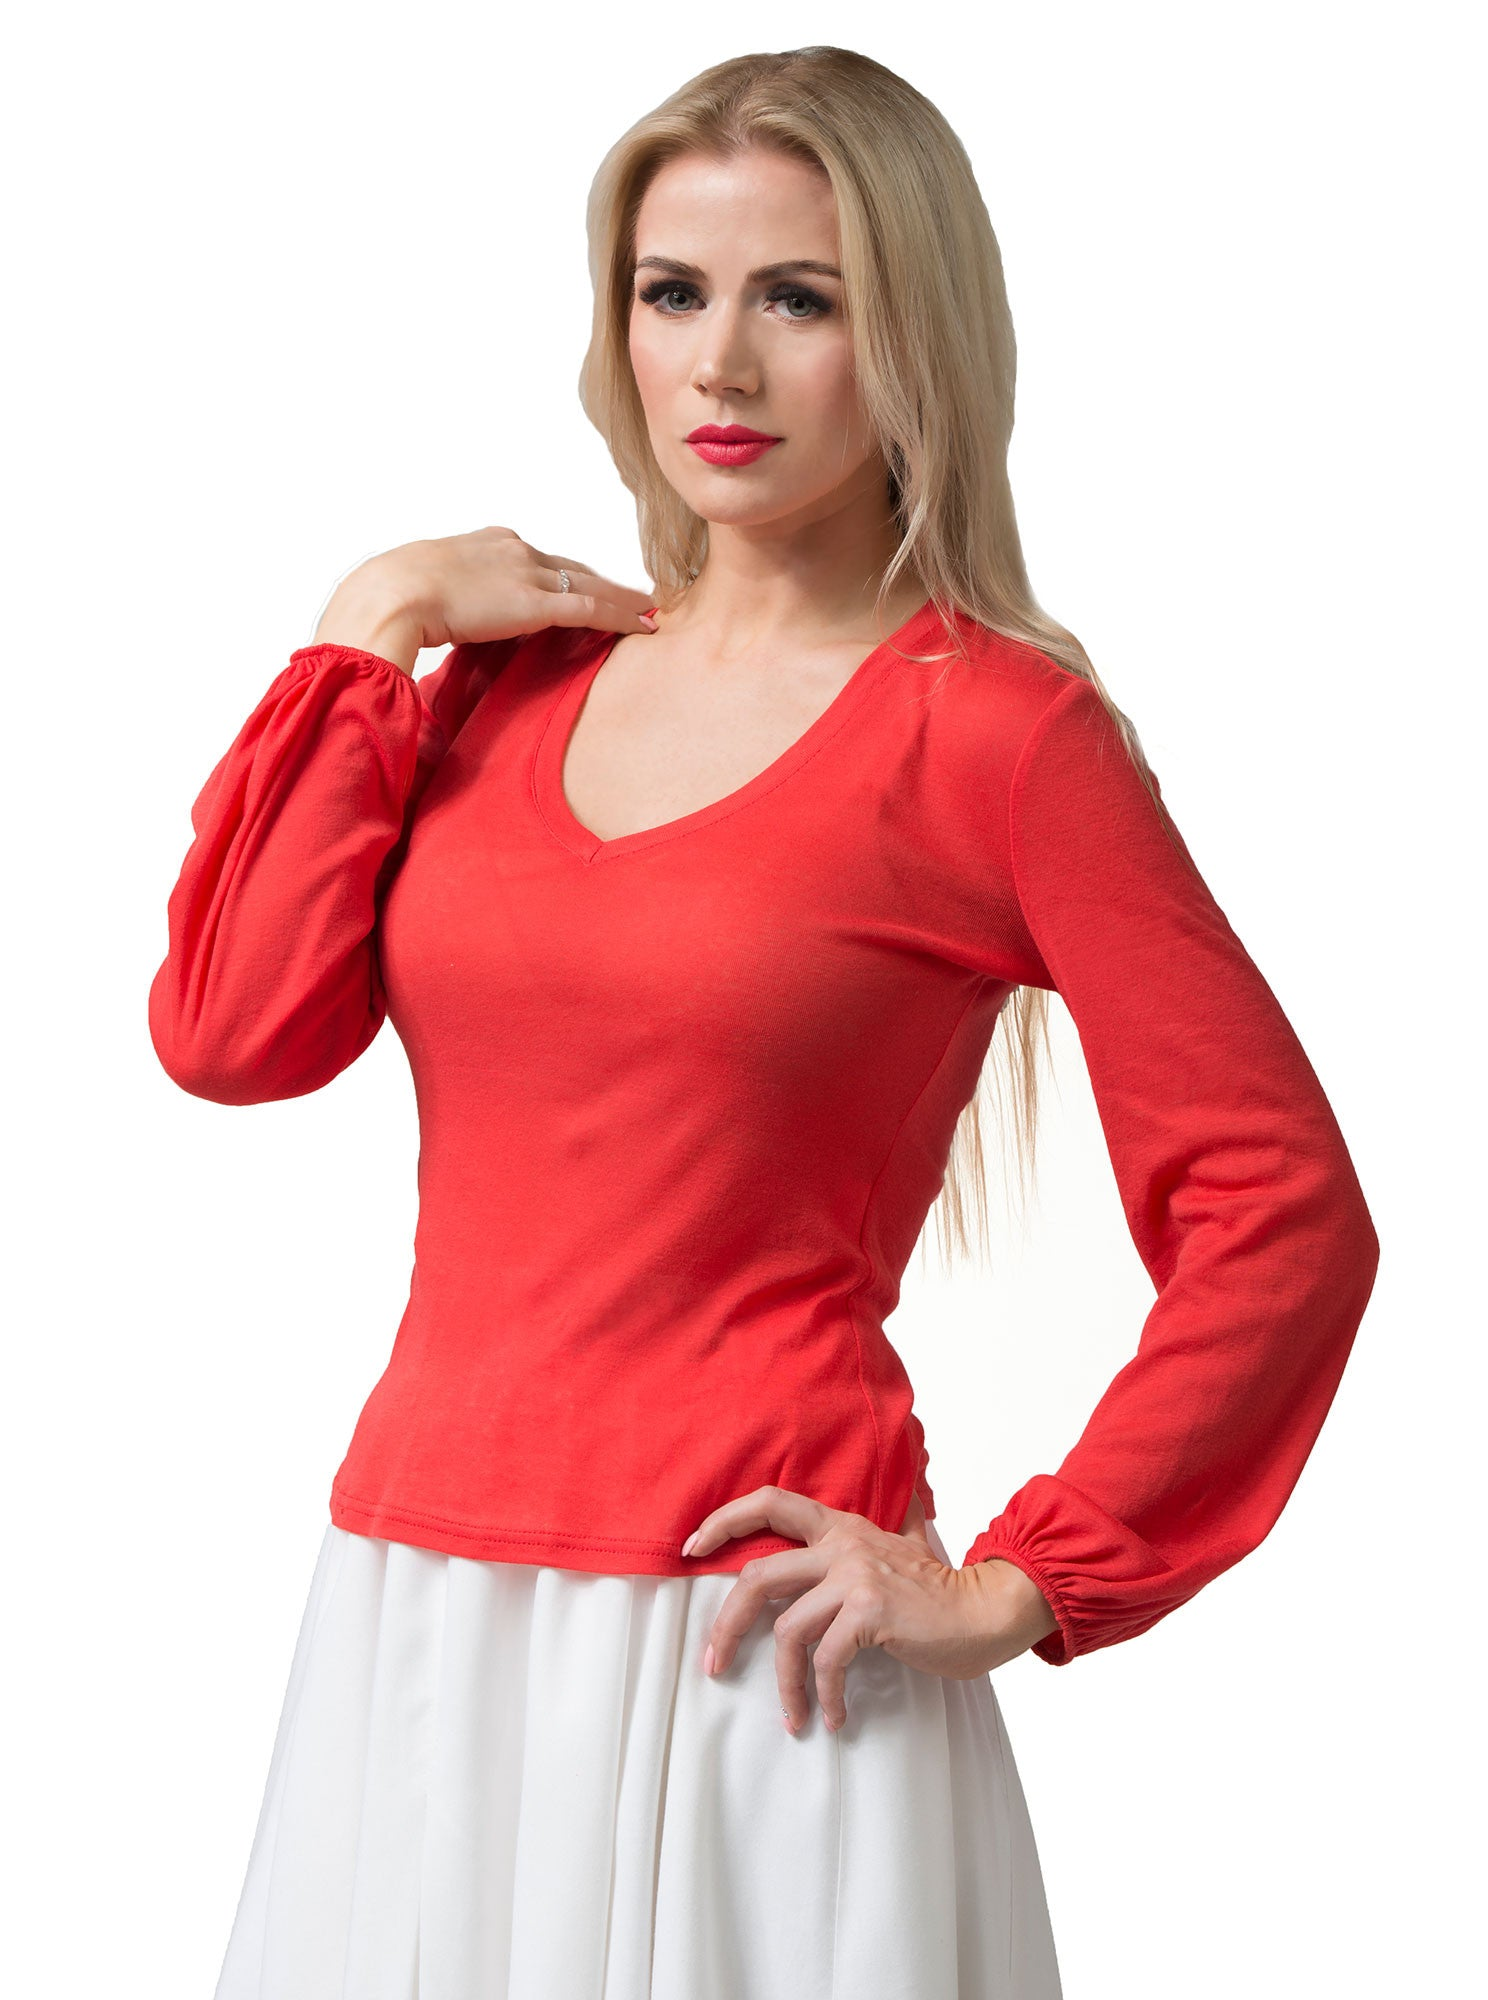 PIRGIT Organic Cotton Strawberry Red Blouse (SOLD OUT)